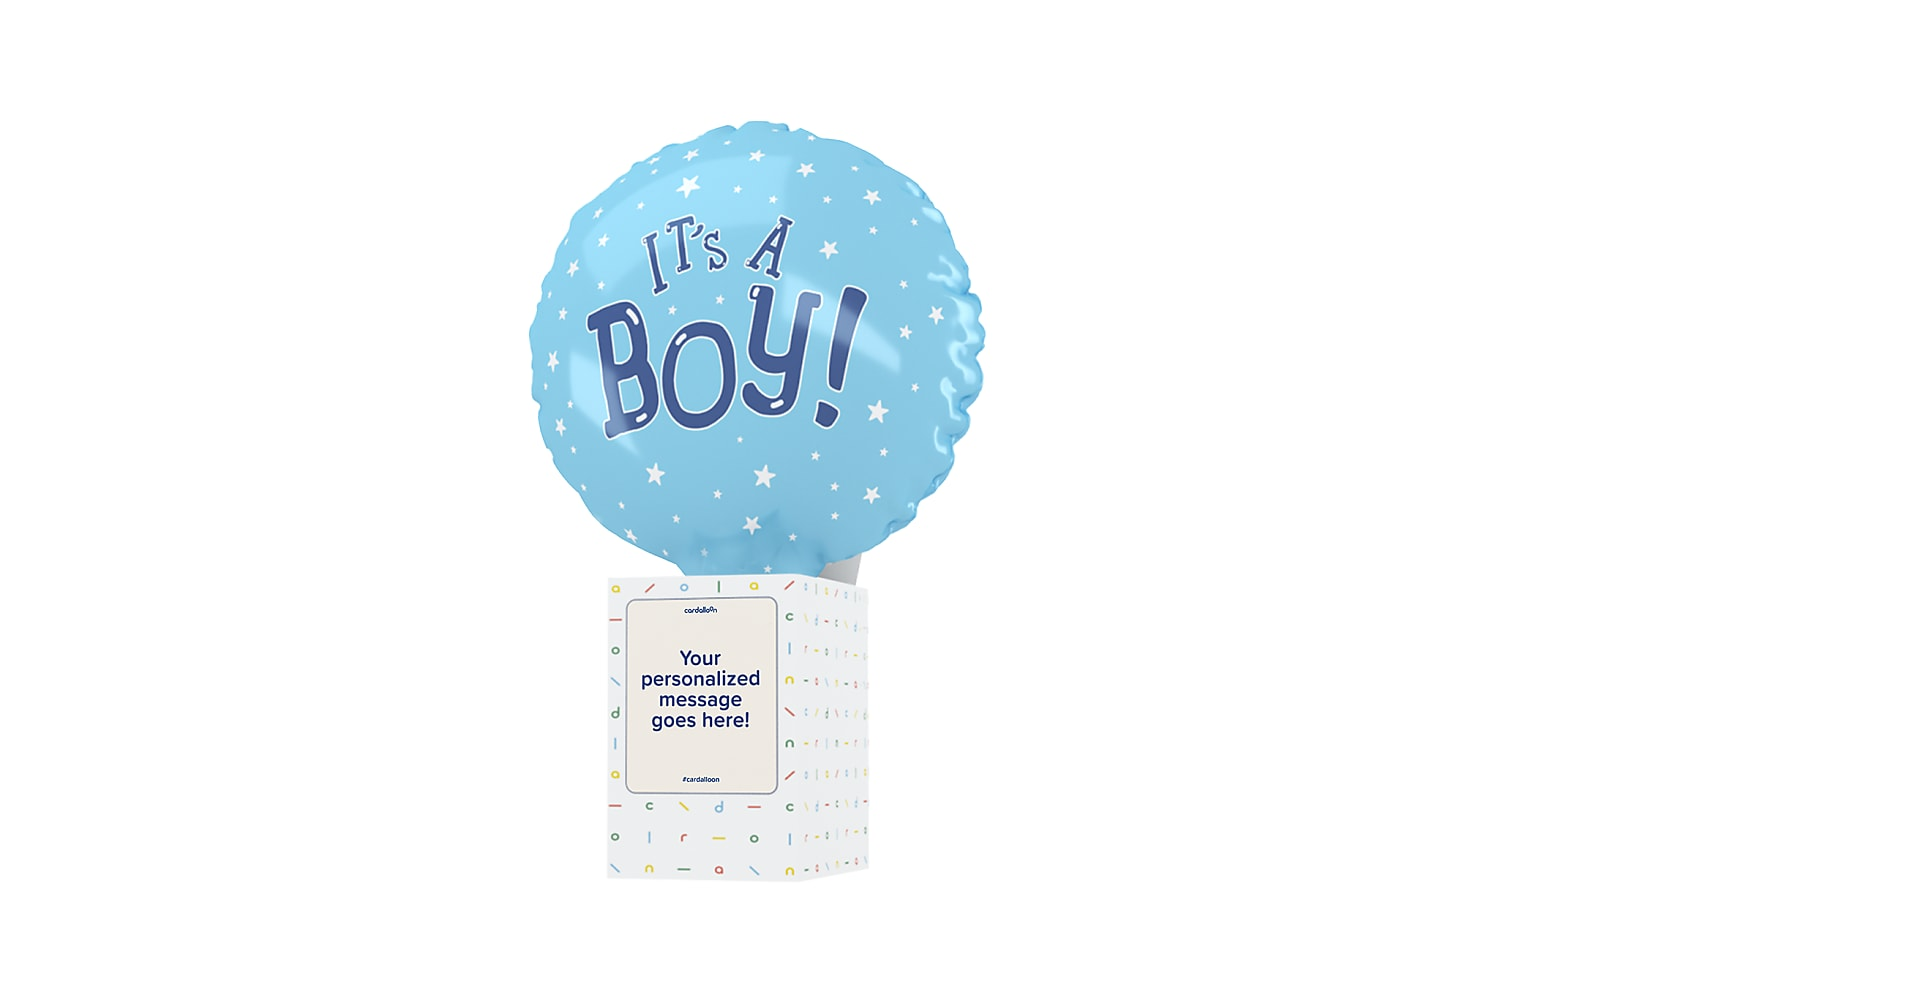 Its A Boy Cardalloon - Image 1 Of 7